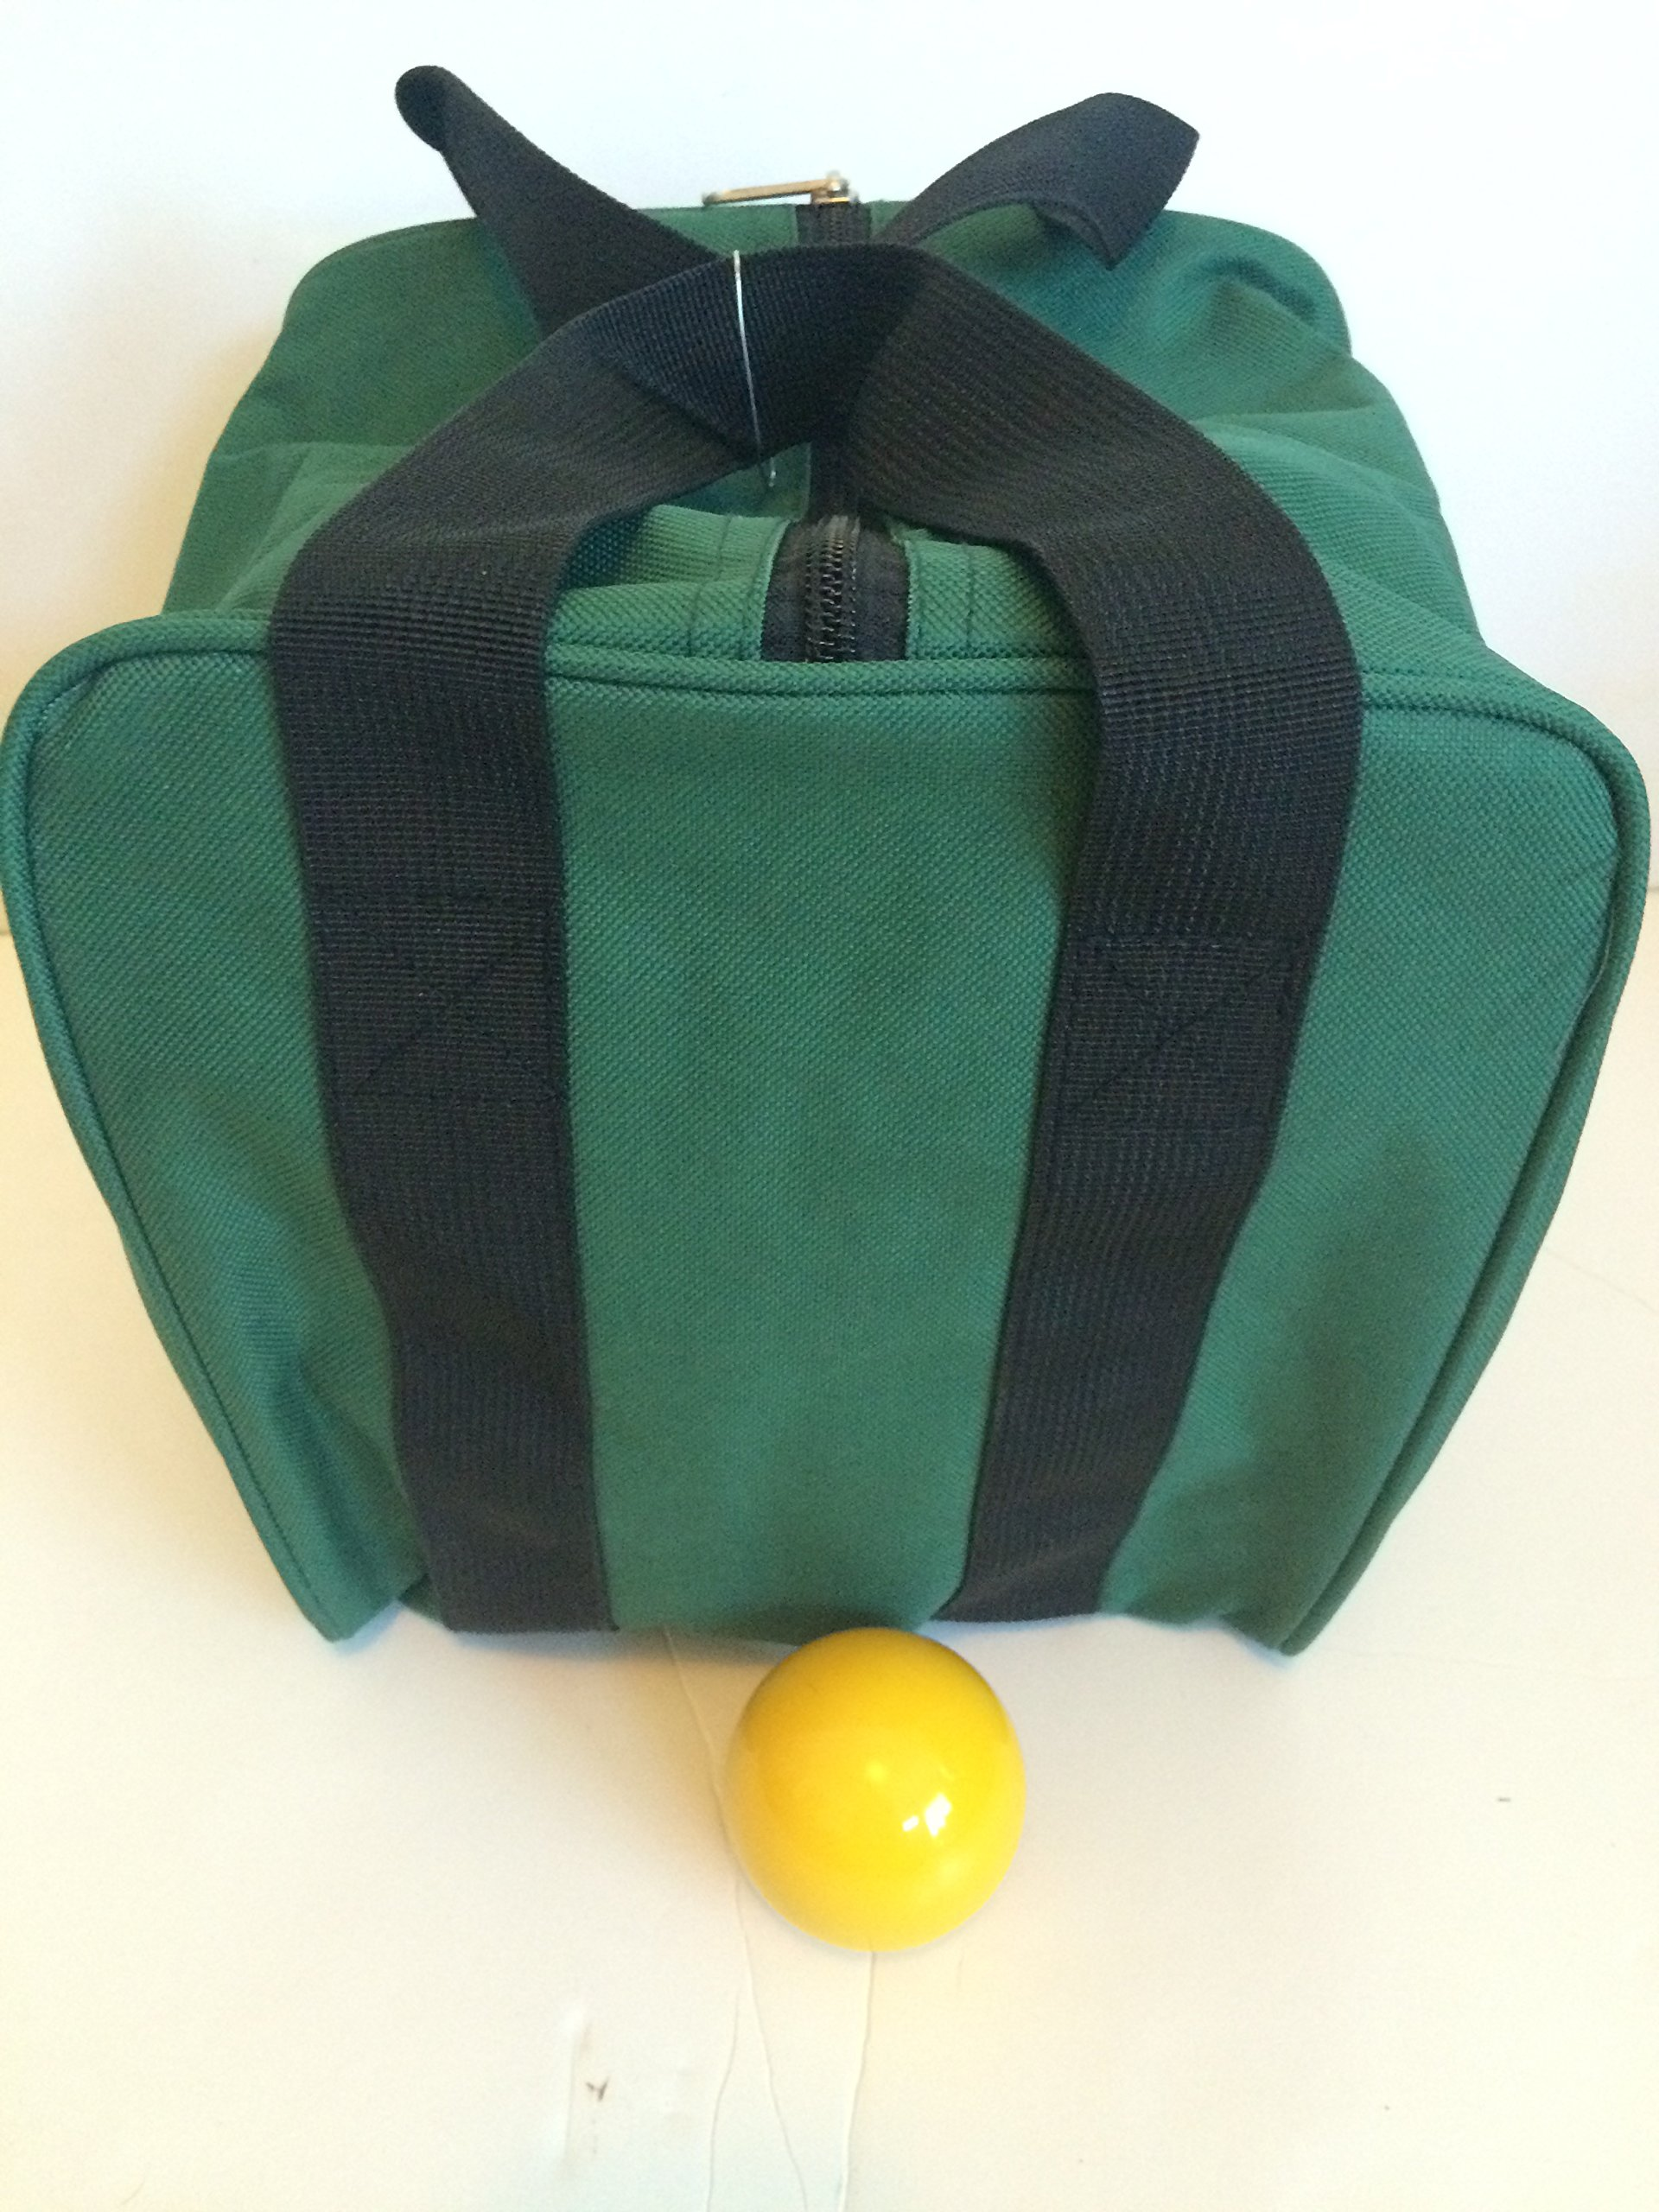 Unique Bocce Accessories Package - Extra Heavy Duty Nylon Bocce Bag (Green with Black Handles) and yellow pallina